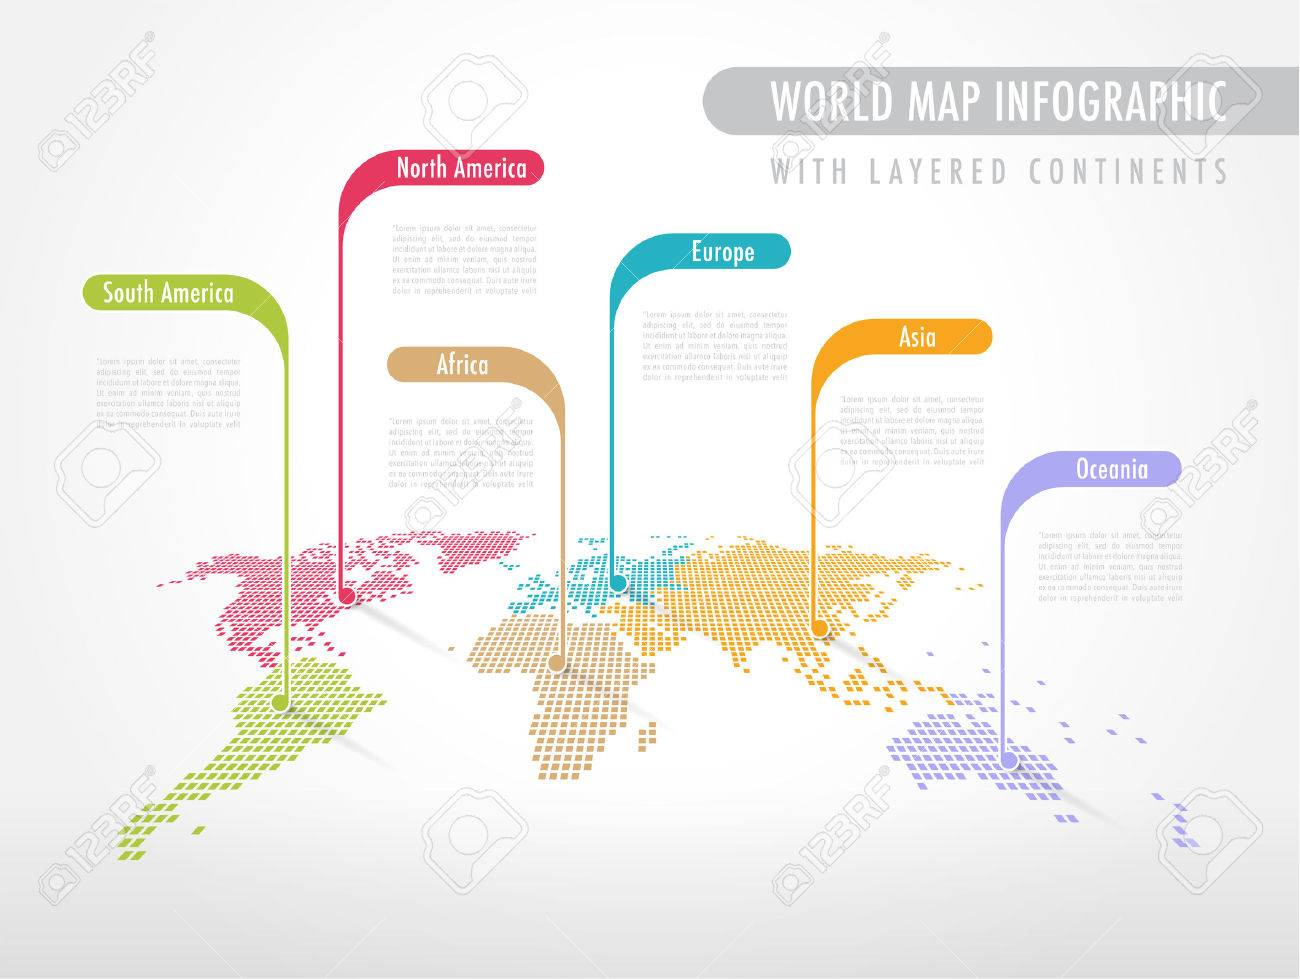 Perspective pixelated world map with labels pointing each continent perspective pixelated world map with labels pointing each continent stock vector 44549038 gumiabroncs Choice Image